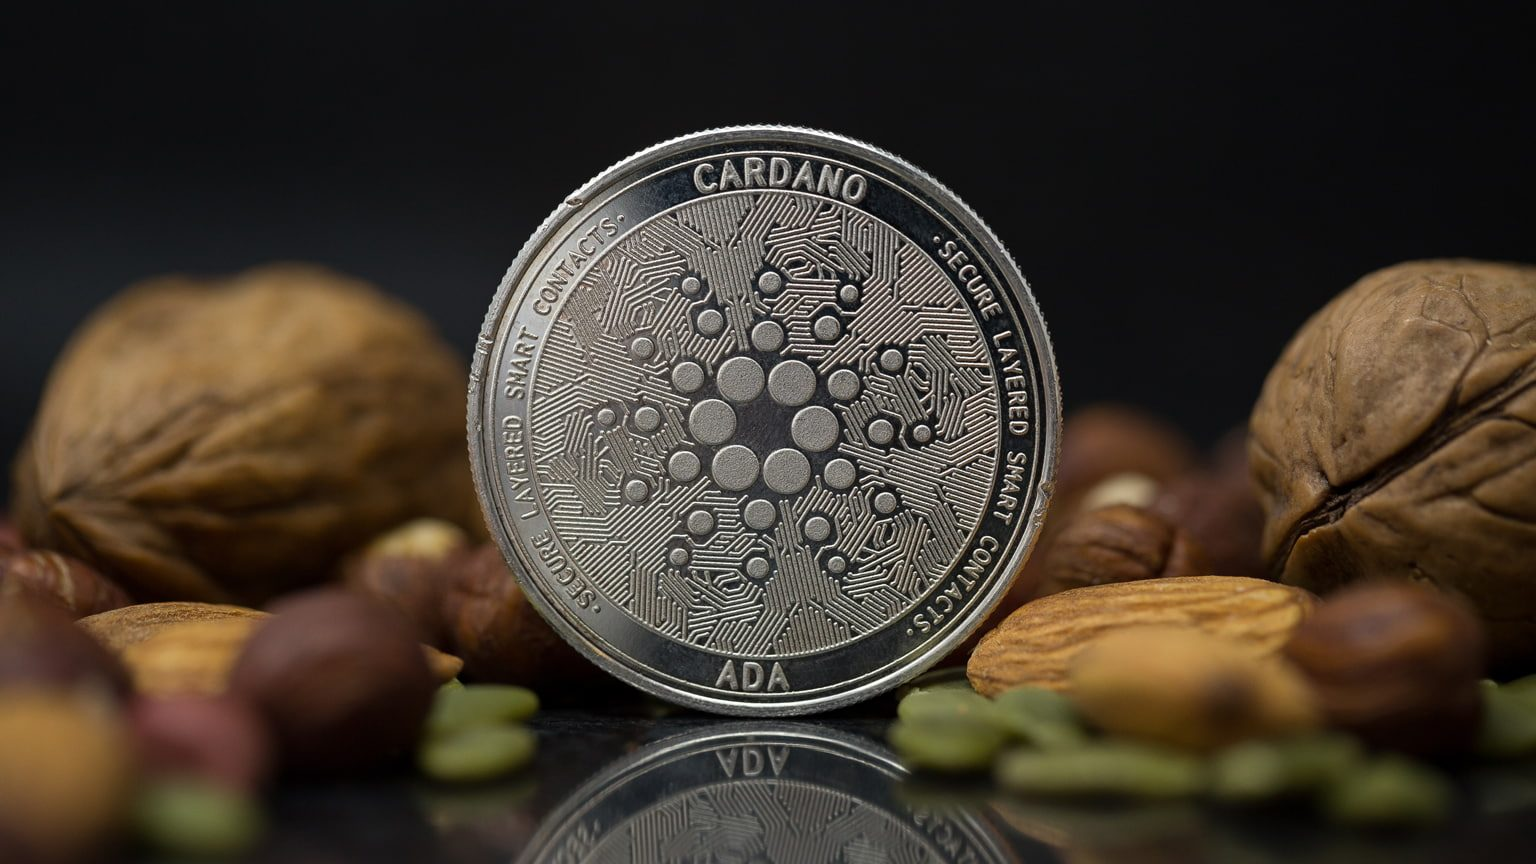 Cardano cryptocurrency physical coin